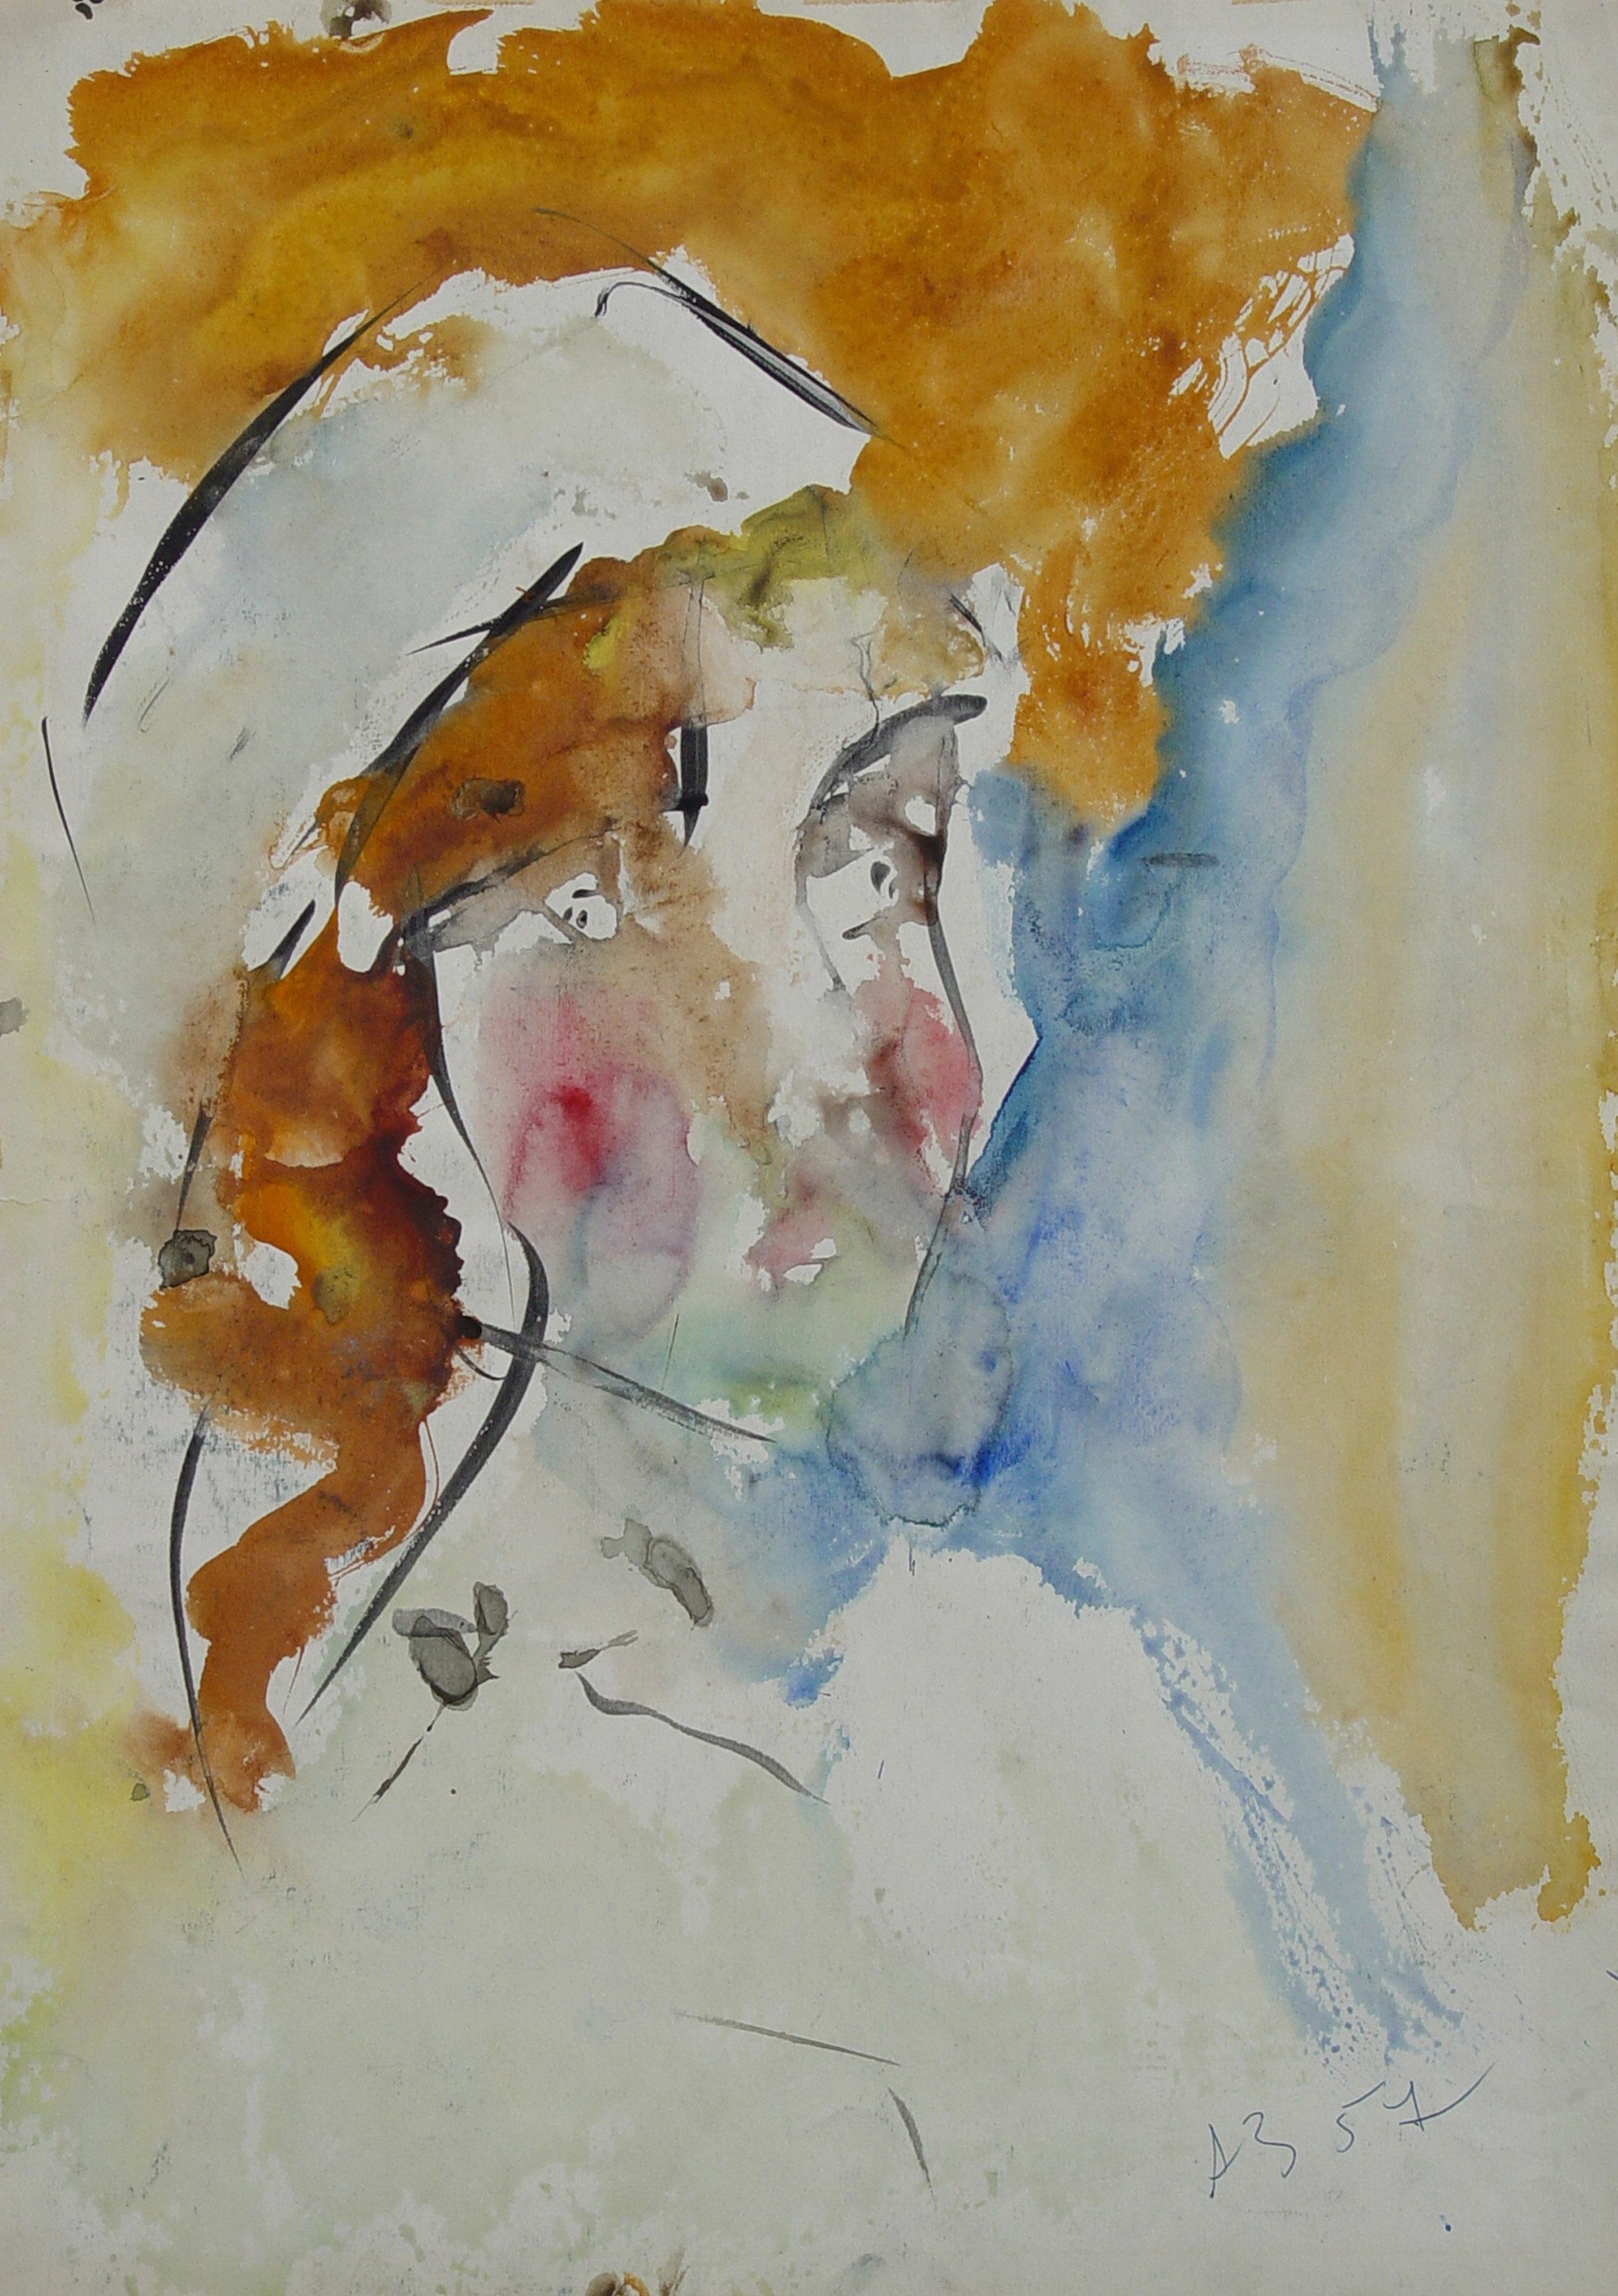 Anatoly Zverev (Russian, 1931-1986) (AR), untitled, watercolor on paper, 60 x 42 cm.